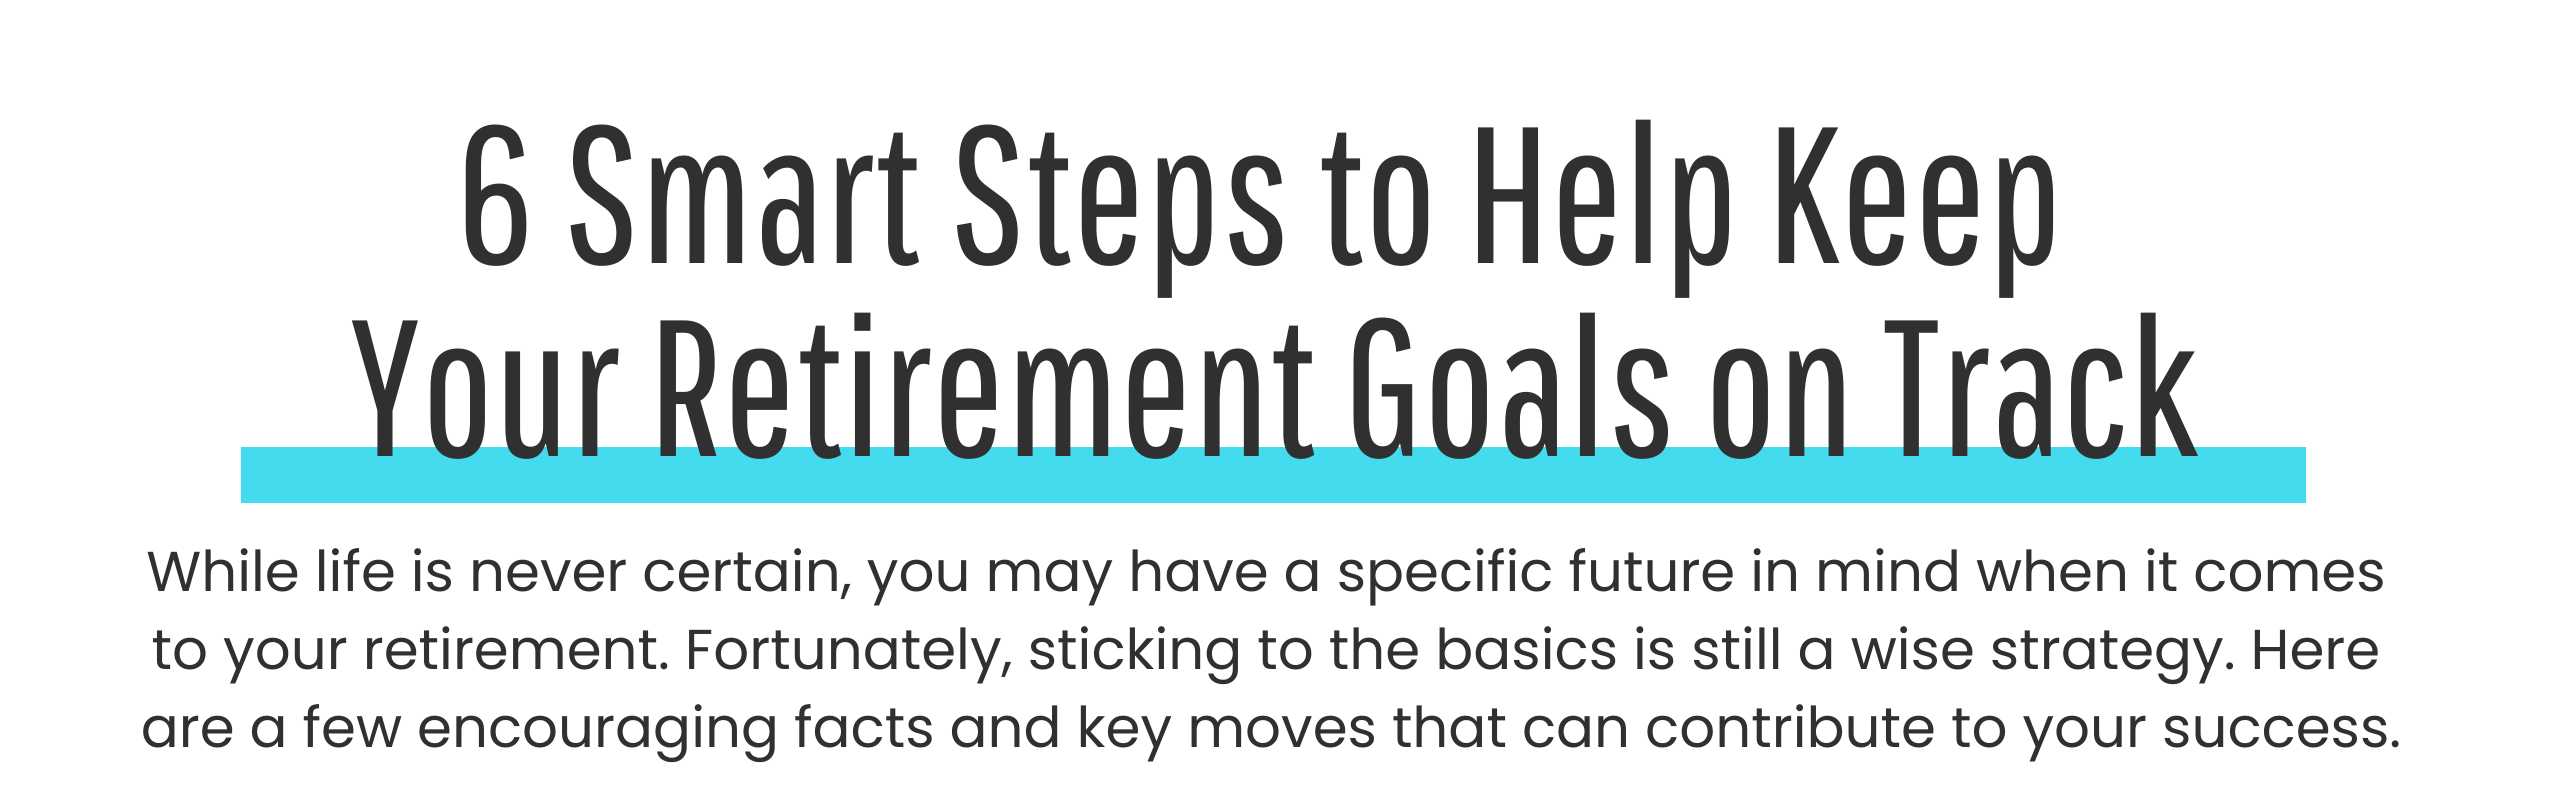 6 Smart Steps to Help Keep Your Retirement Goals on Track. While life is never certain, you may have a specific future in mind when it comes to your retirement. Fortunately, sticking to the basics is still a wise strategy. Here are a few encouraging facts and key moves that can contribute to your success.